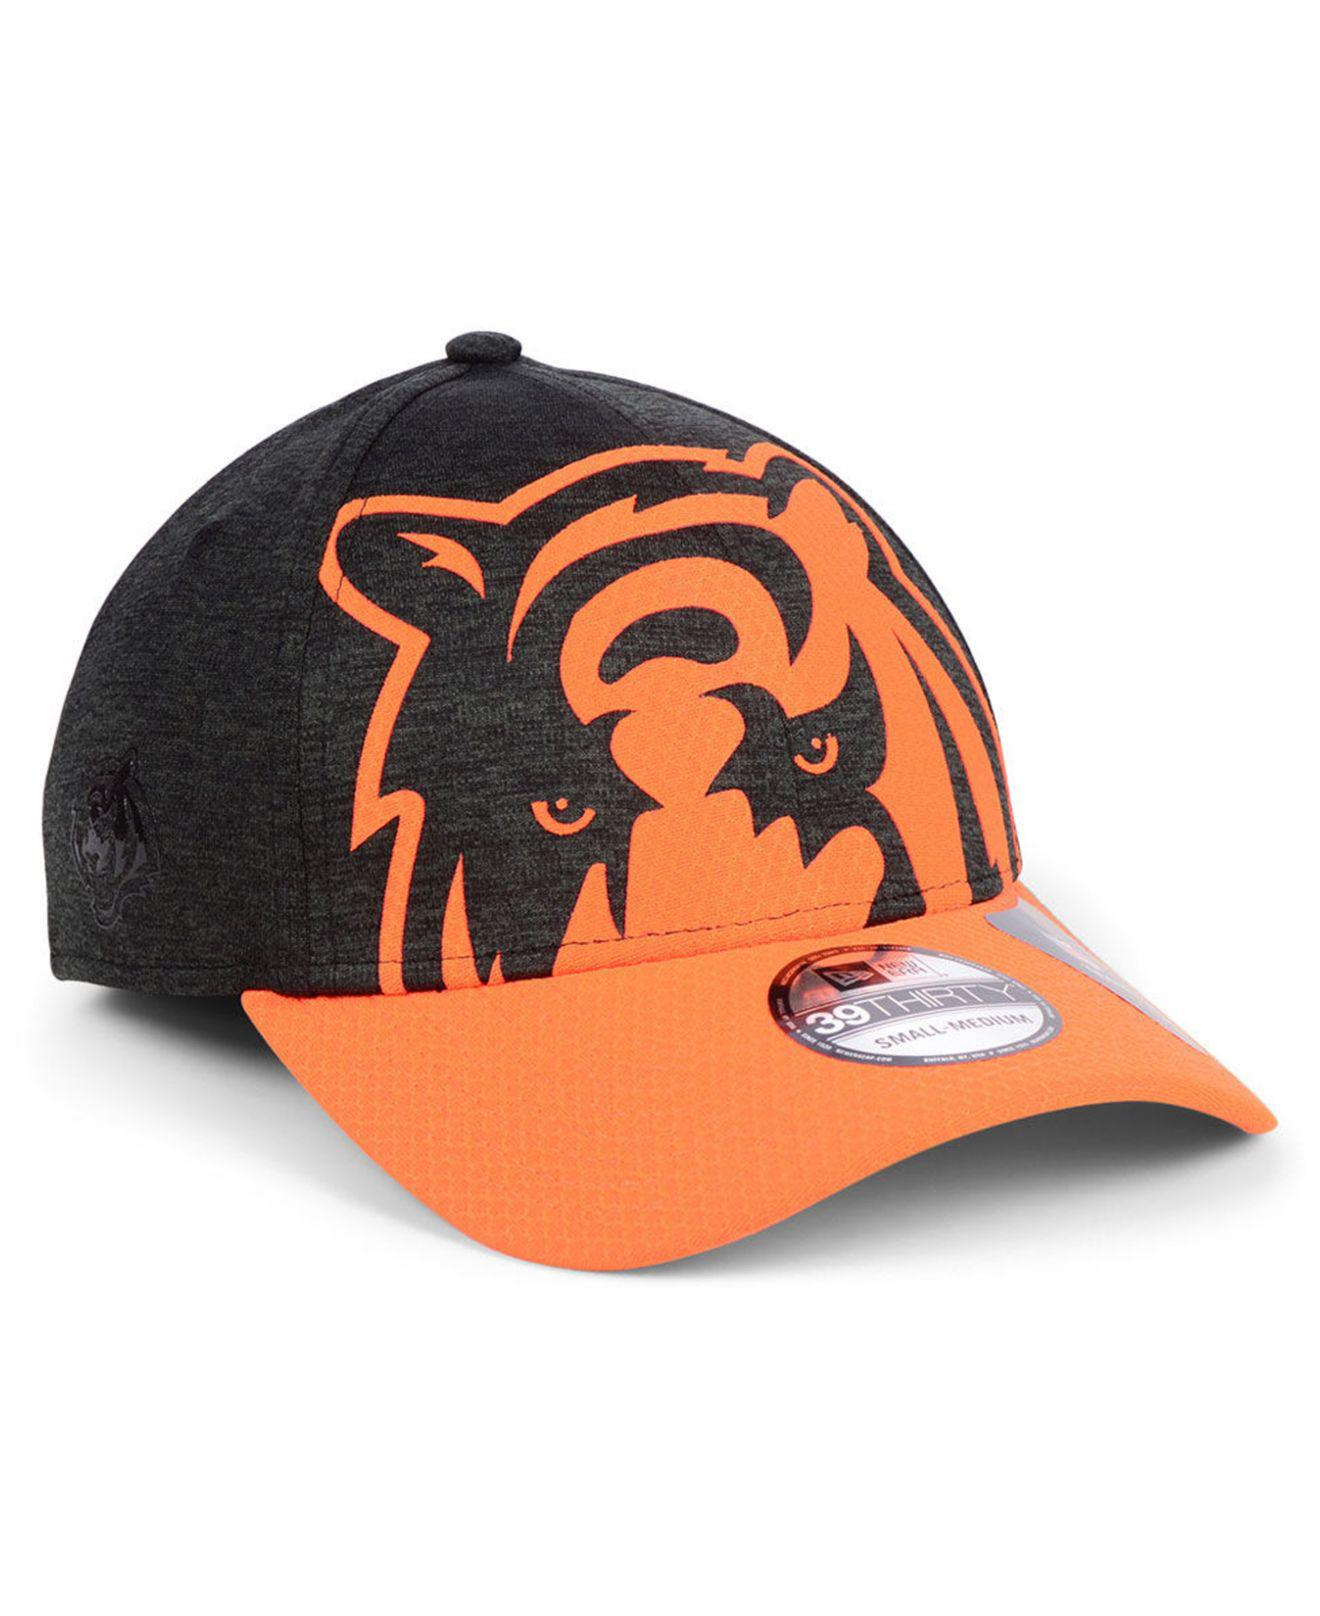 KTZ. Men s Orange Cincinnati Bengals Oversized Laser Cut Logo 39thirty Cap 15ee0ded1eb7